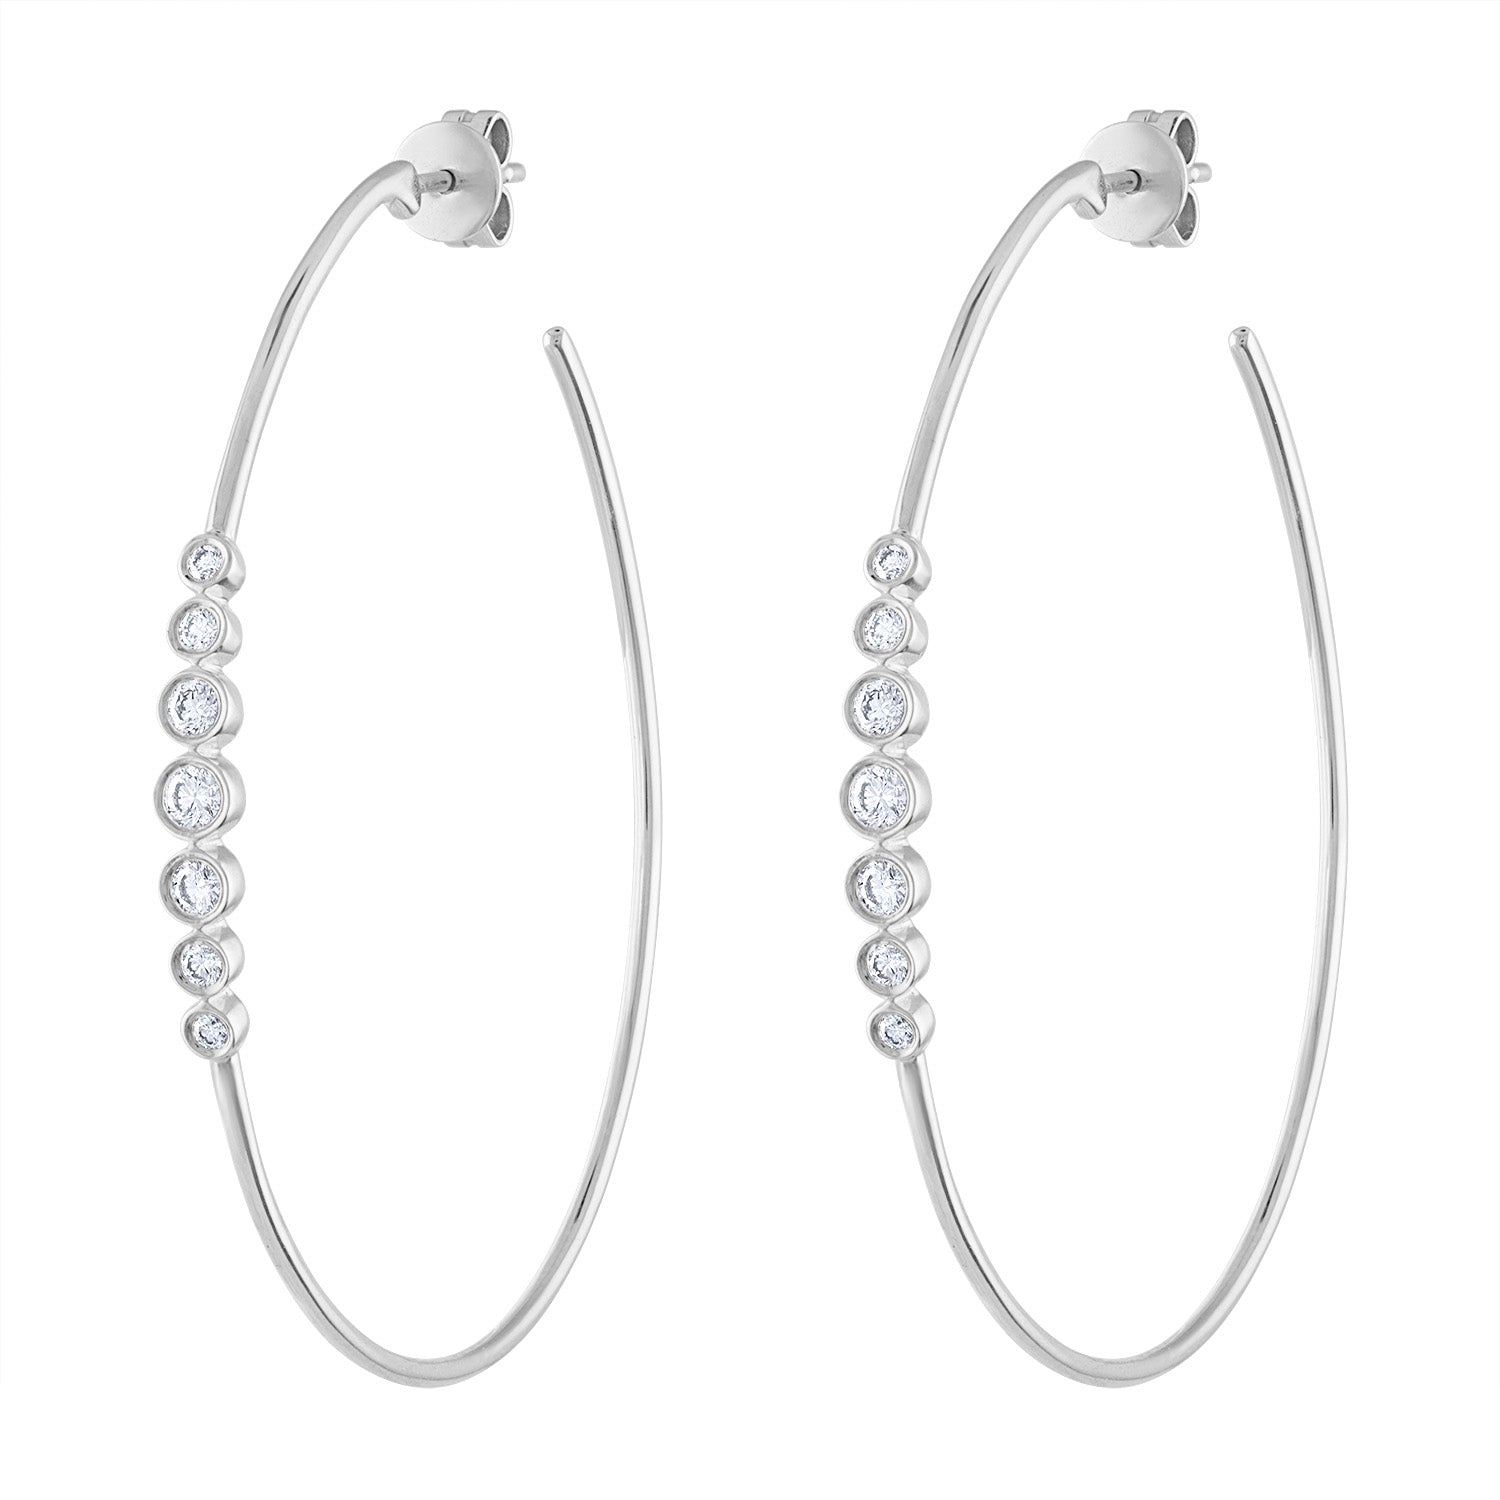 14k White Gold diamond 7 bezel large hoop earring